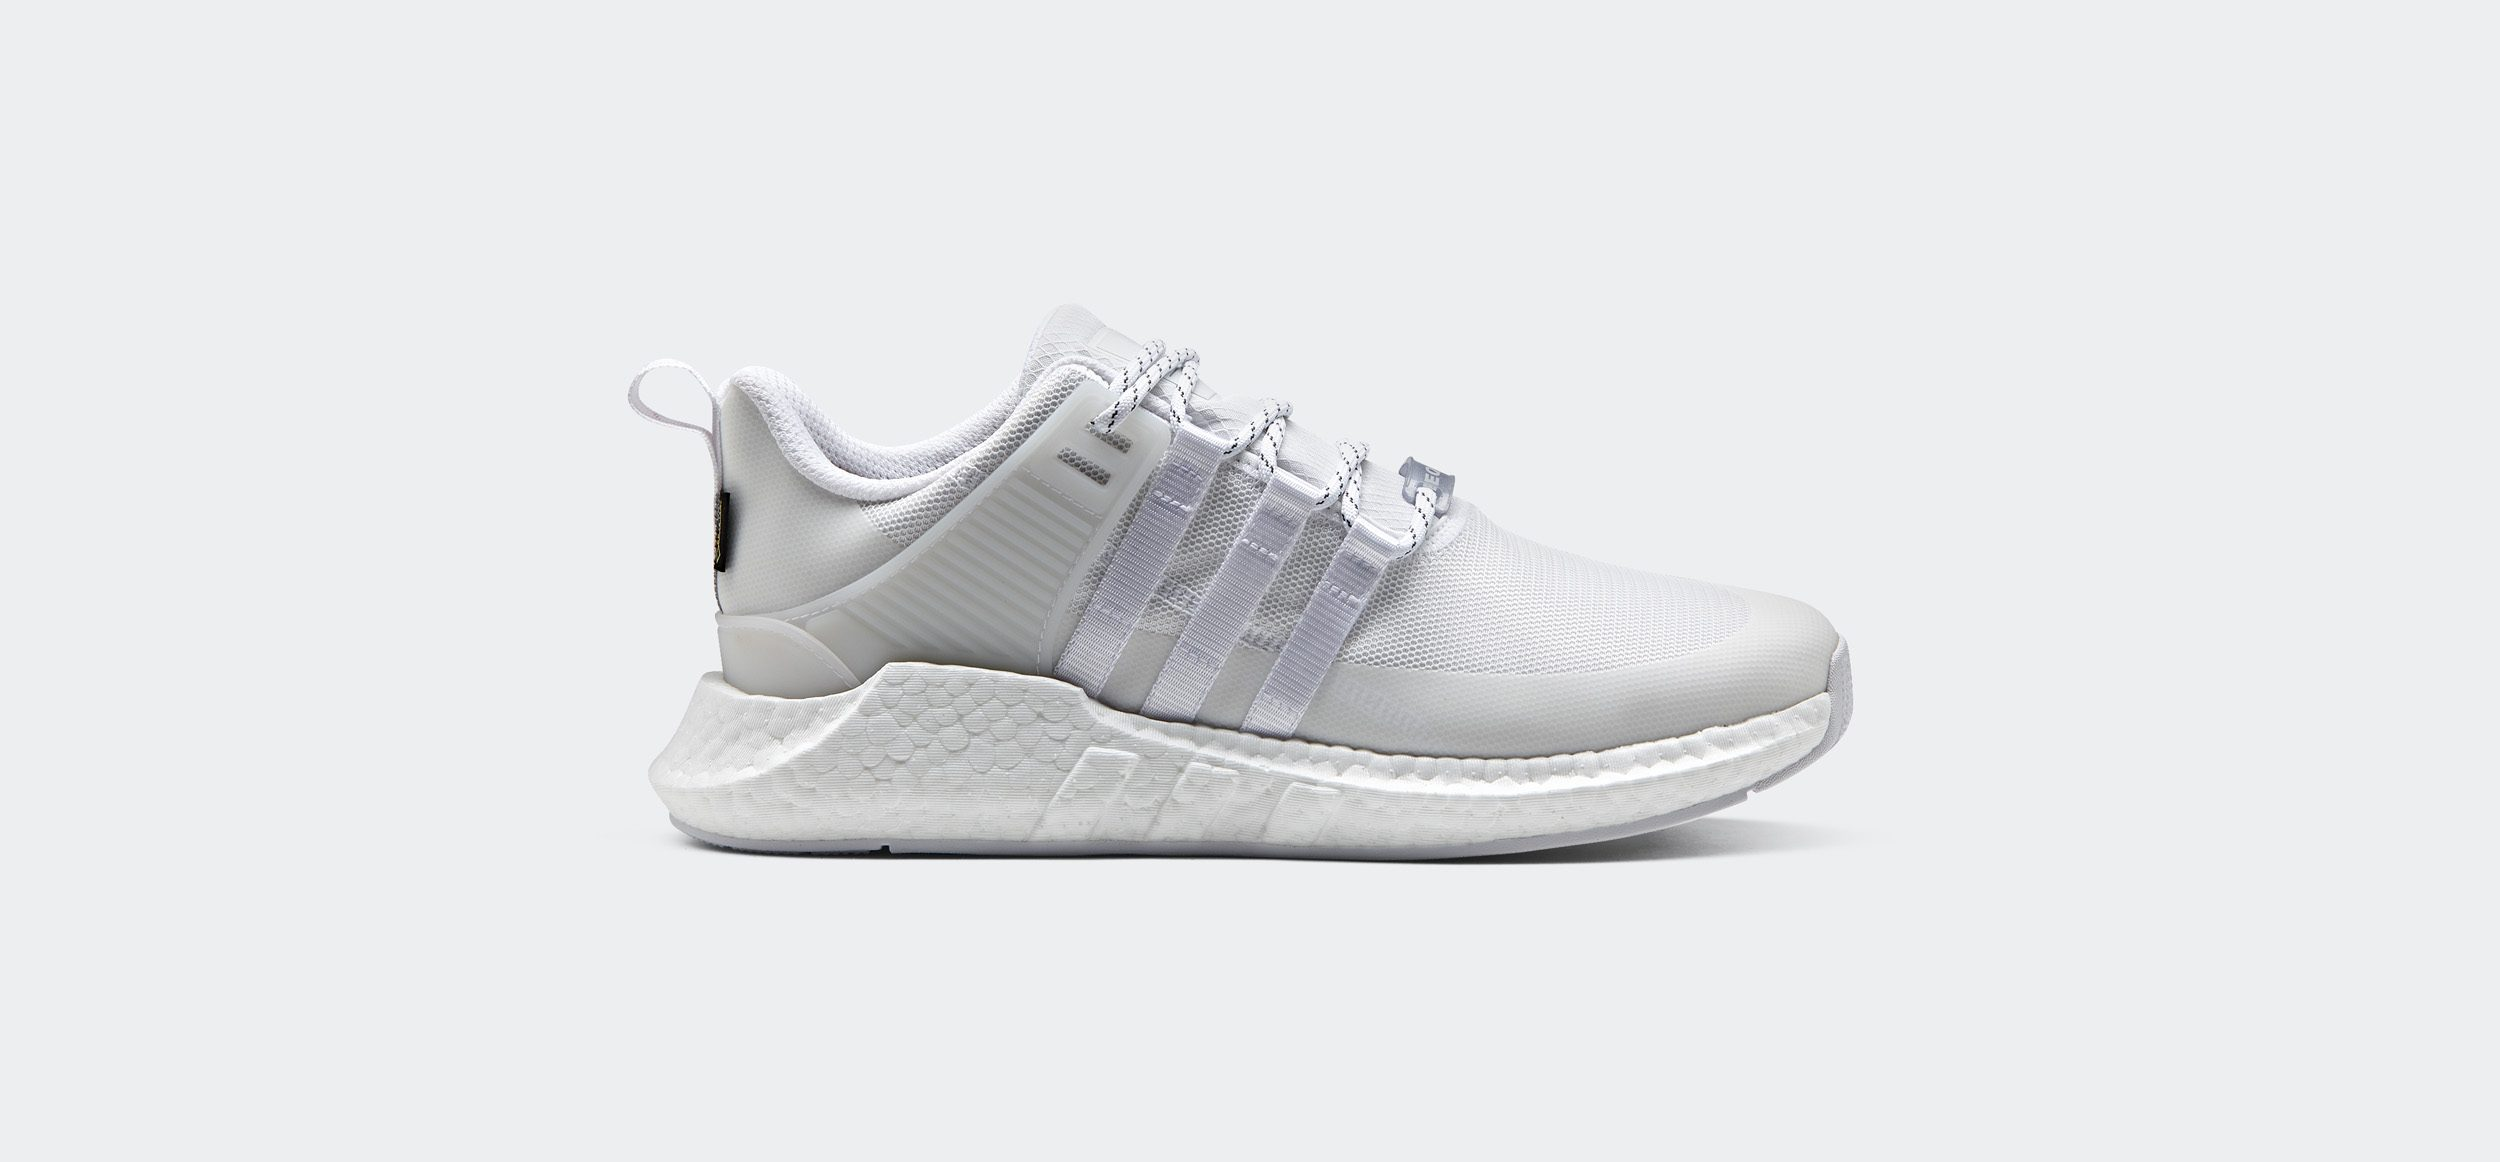 EQT Support Adv J (GS) Adidas bb0543 cblack/cblack/turbo